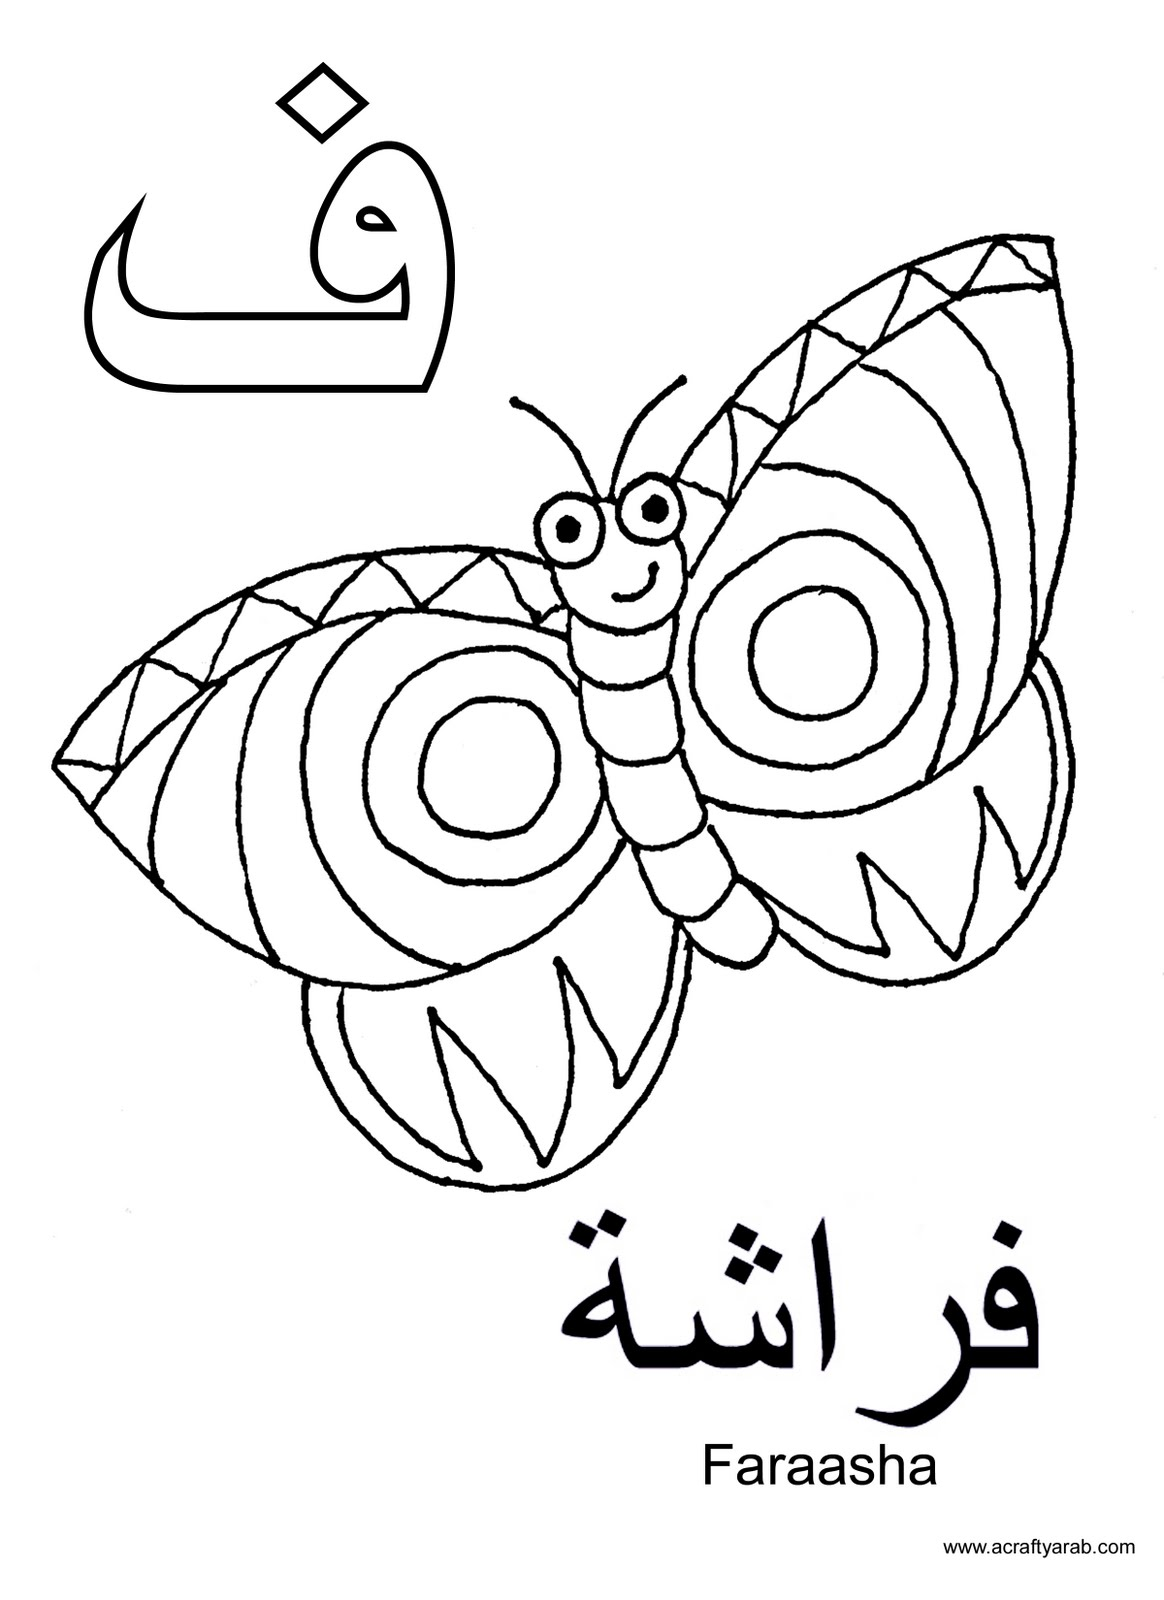 Coloring Pages Arabic Alphabet : A crafty arab arabic alphabet coloring pages fa is for